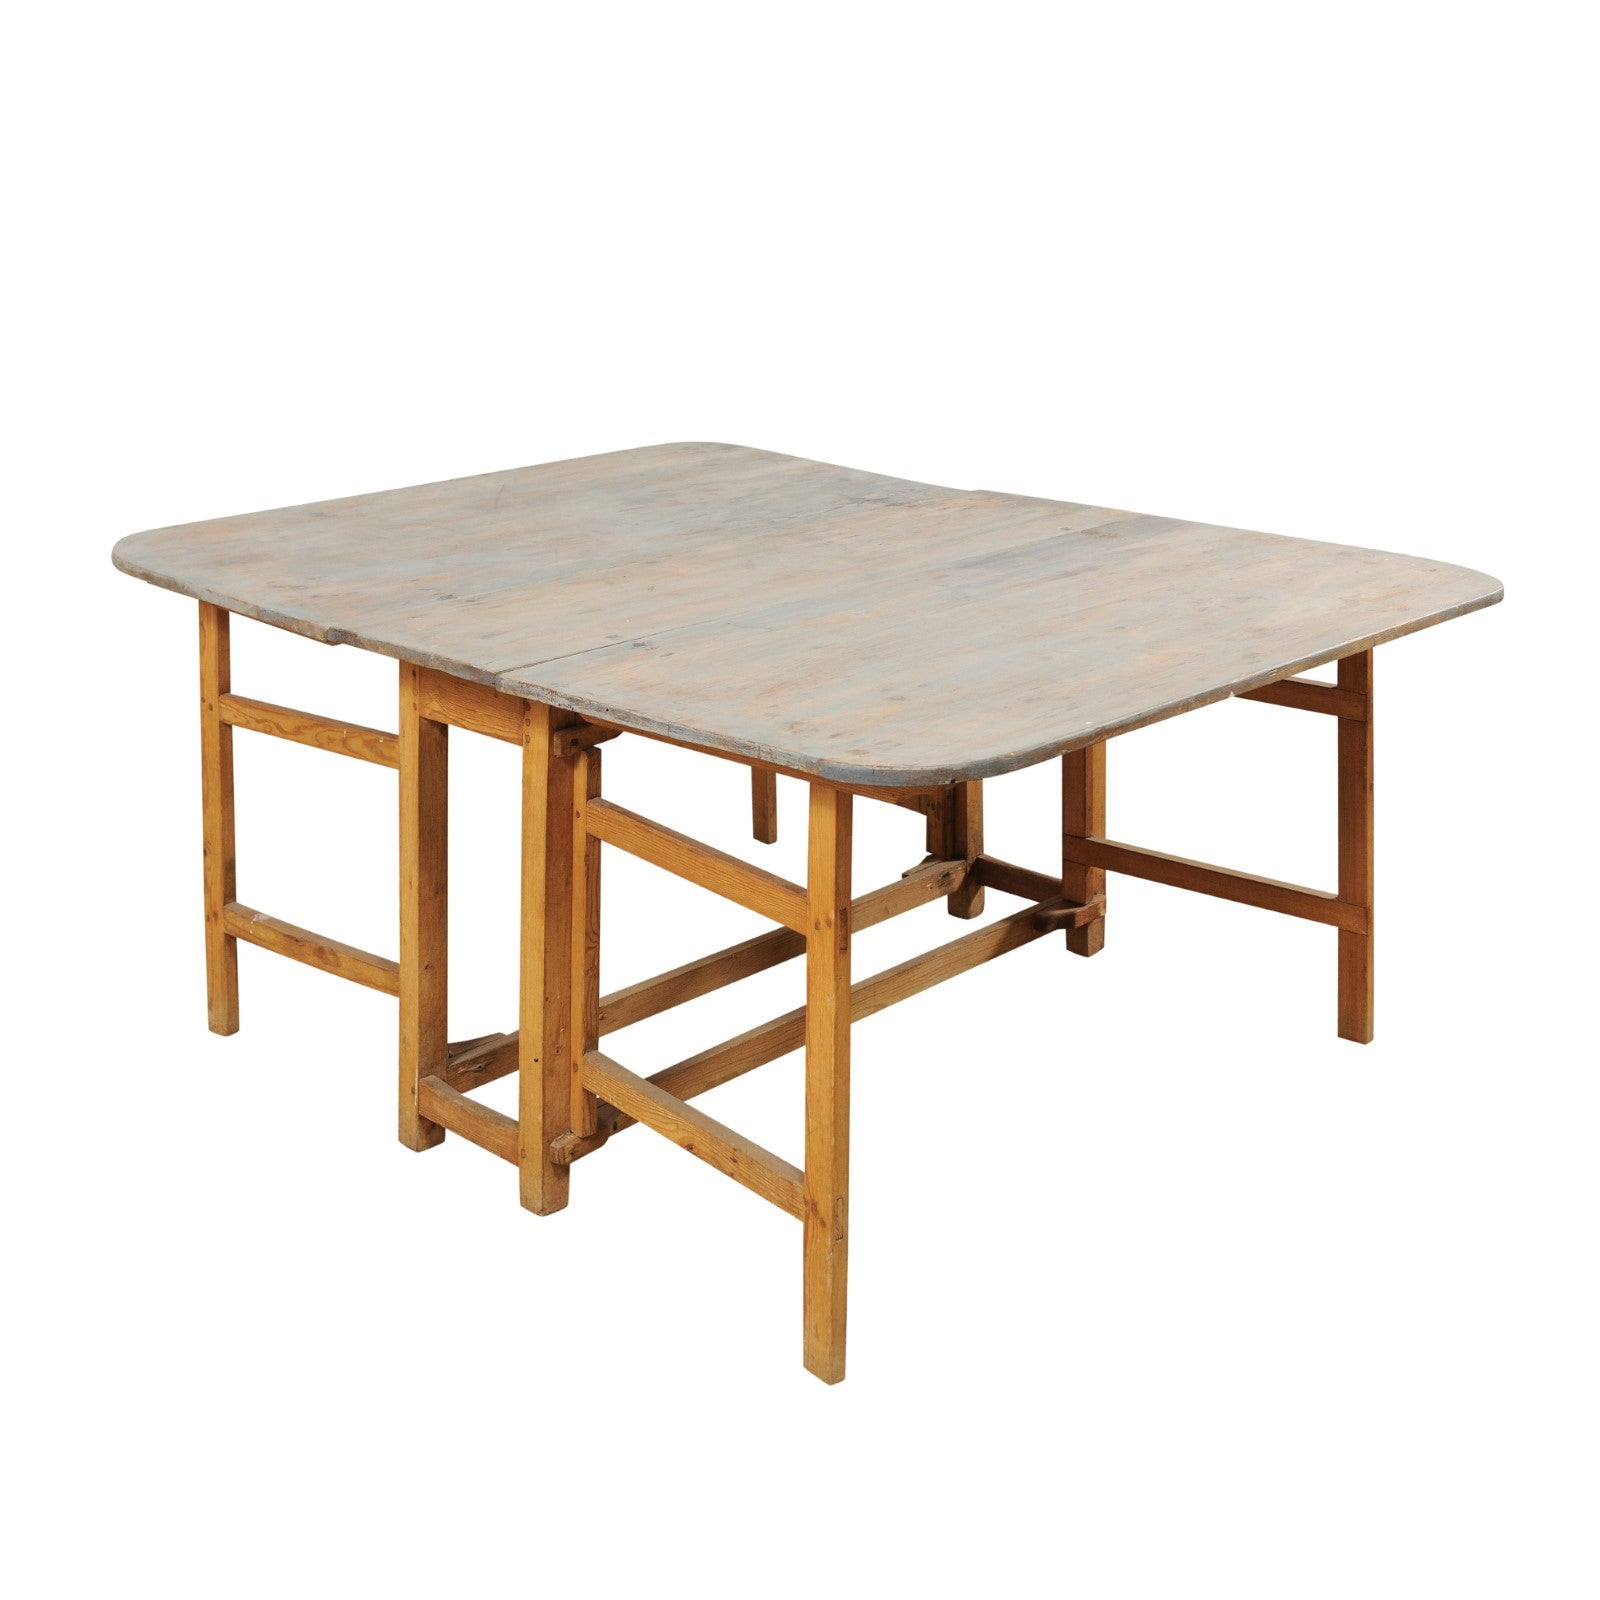 Early 19th Century Swedish Painted Wood Table with Gate Legs